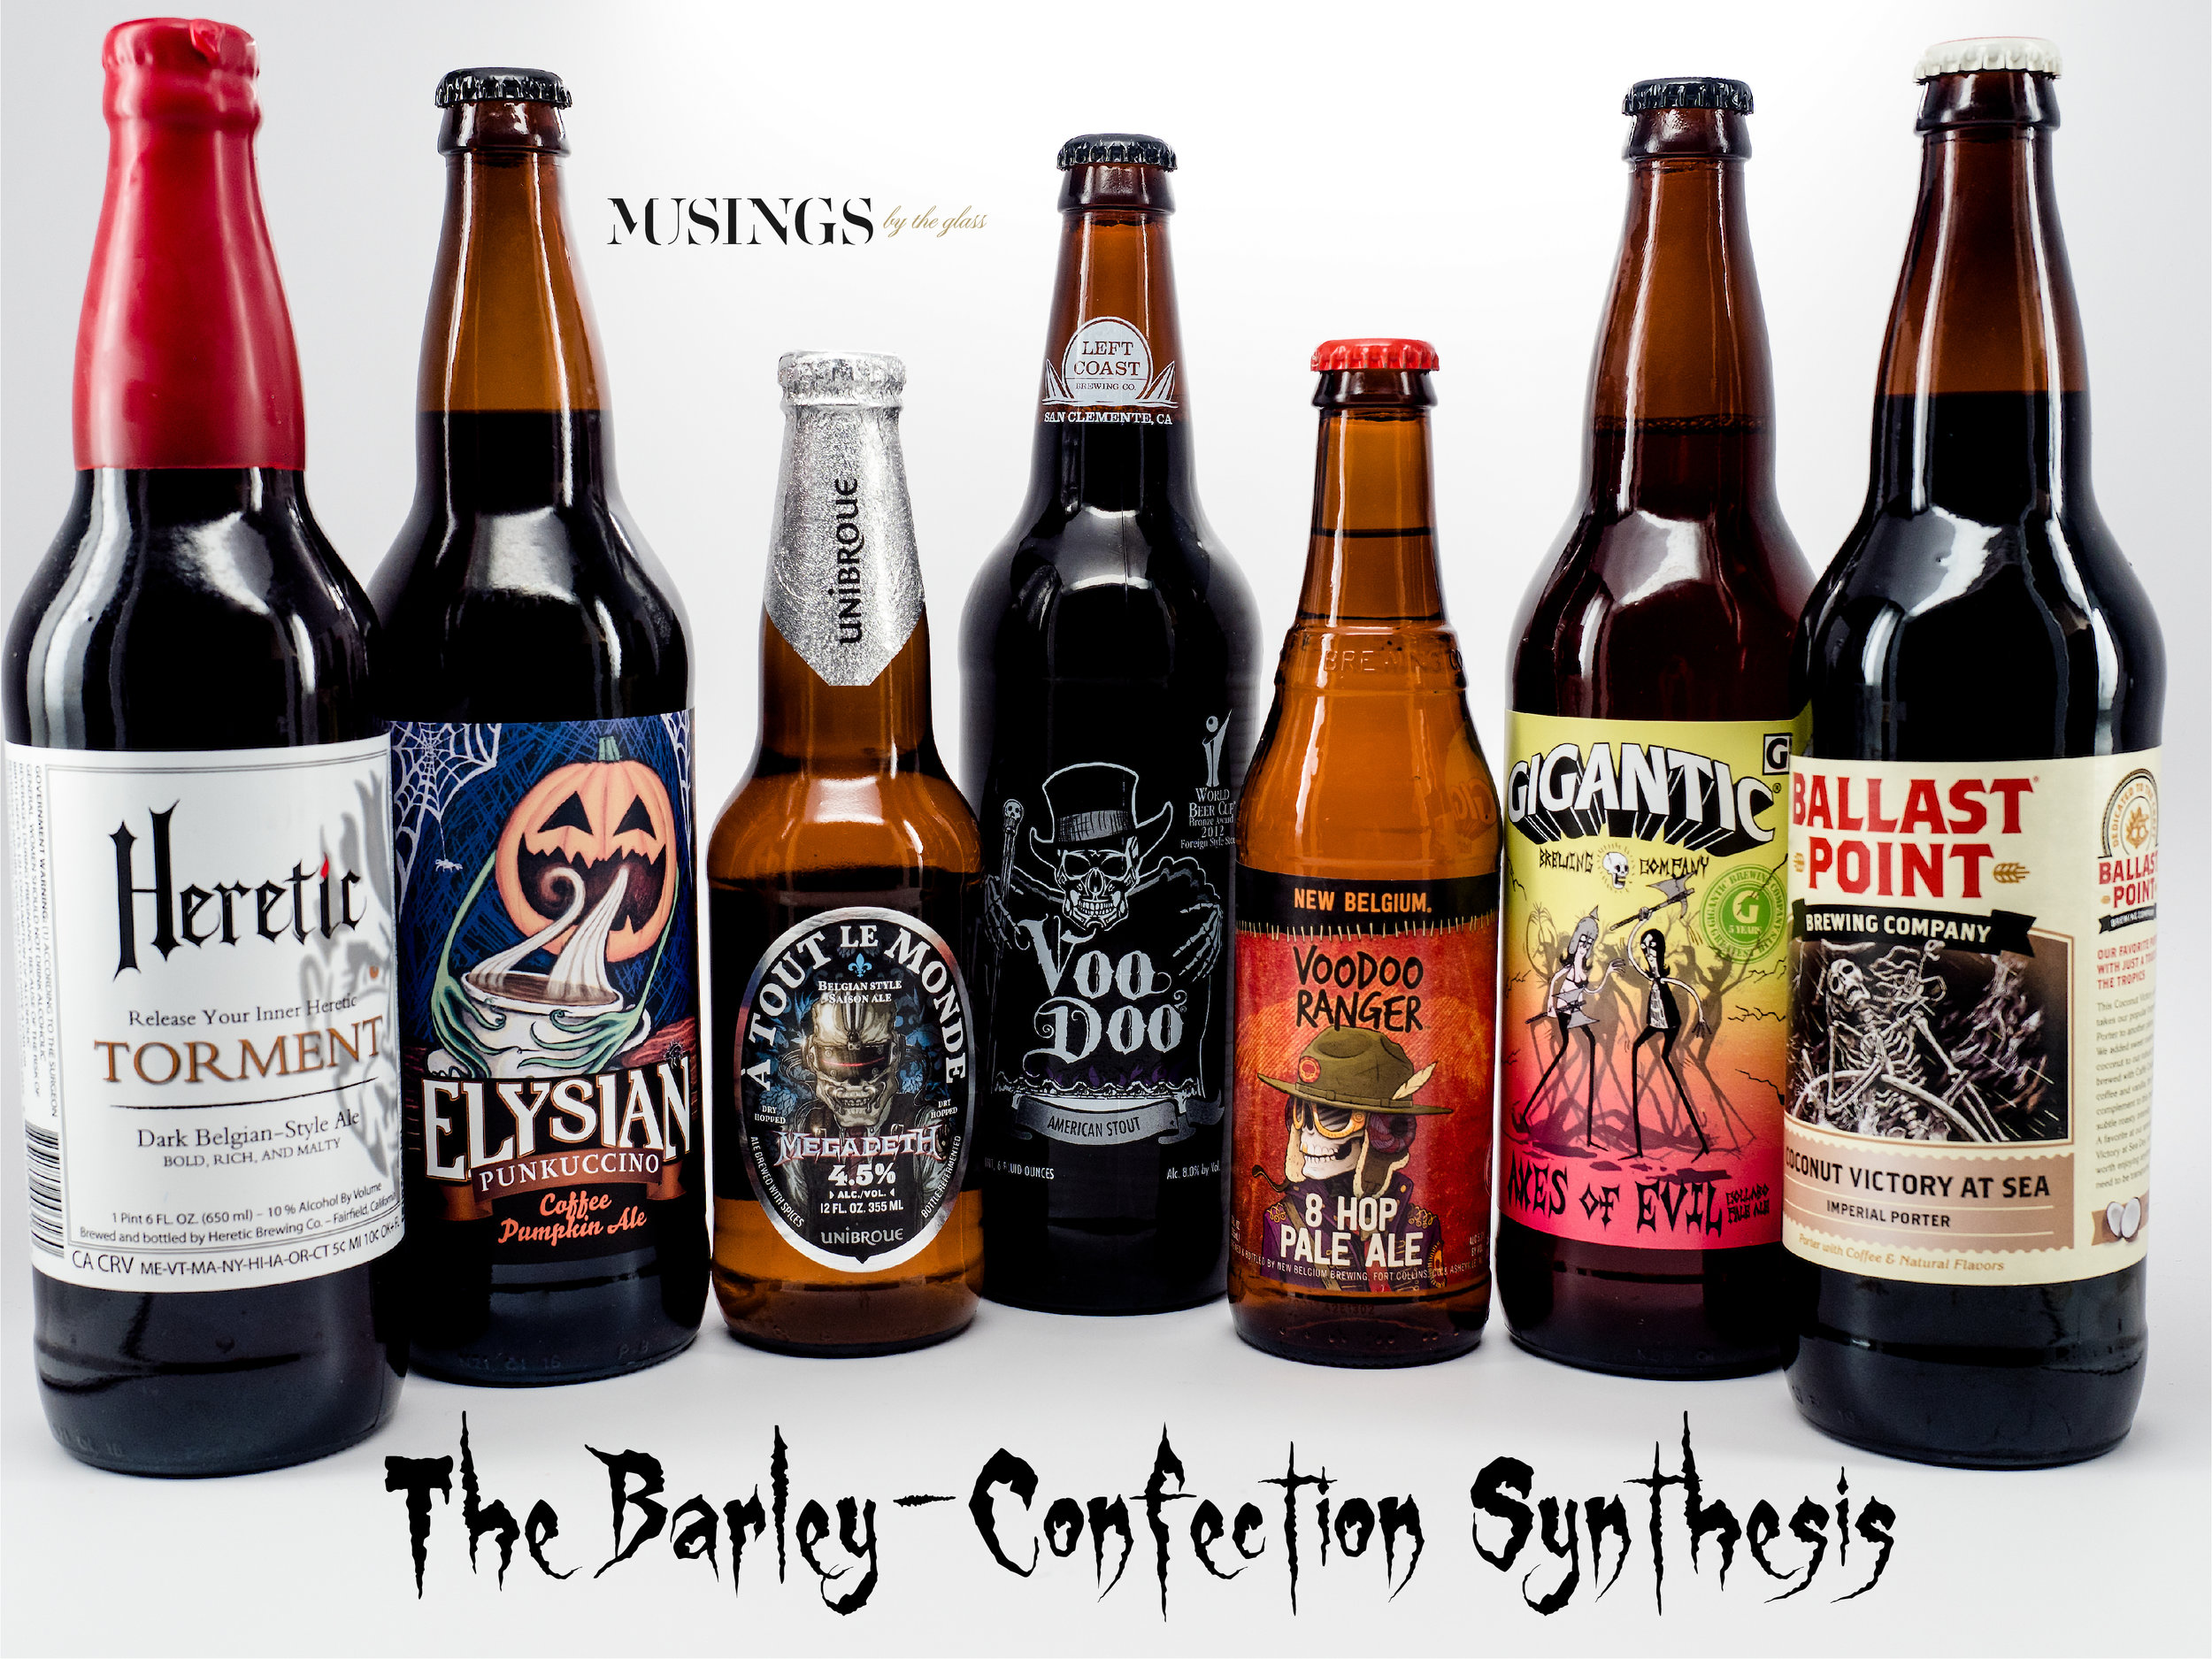 Musings by the Glass - Pairing Beer with Halloween Candy - Barley-Confection Synthesis Beer Lineup